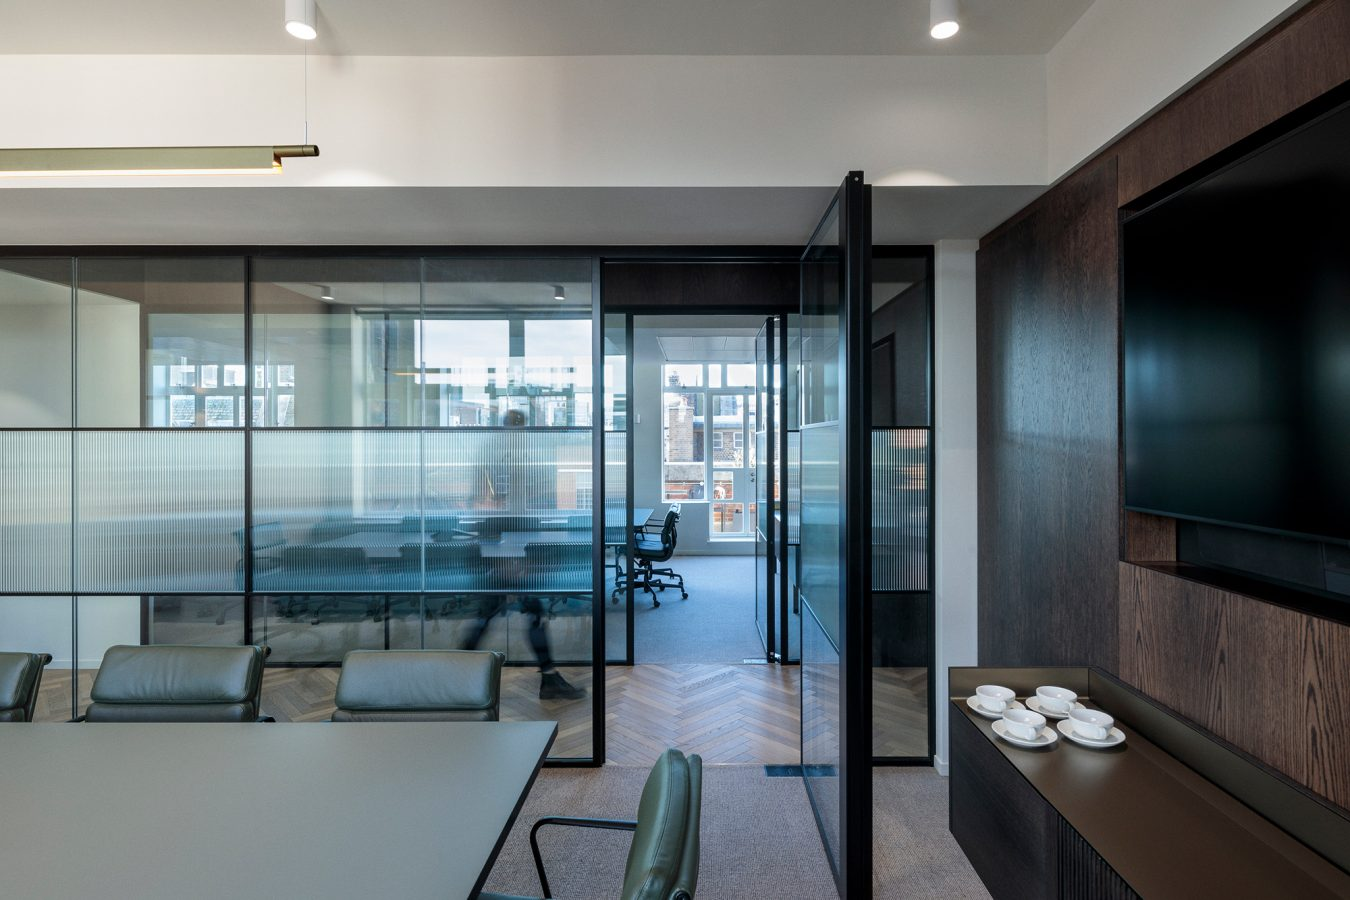 See through glass partitions in an office space.